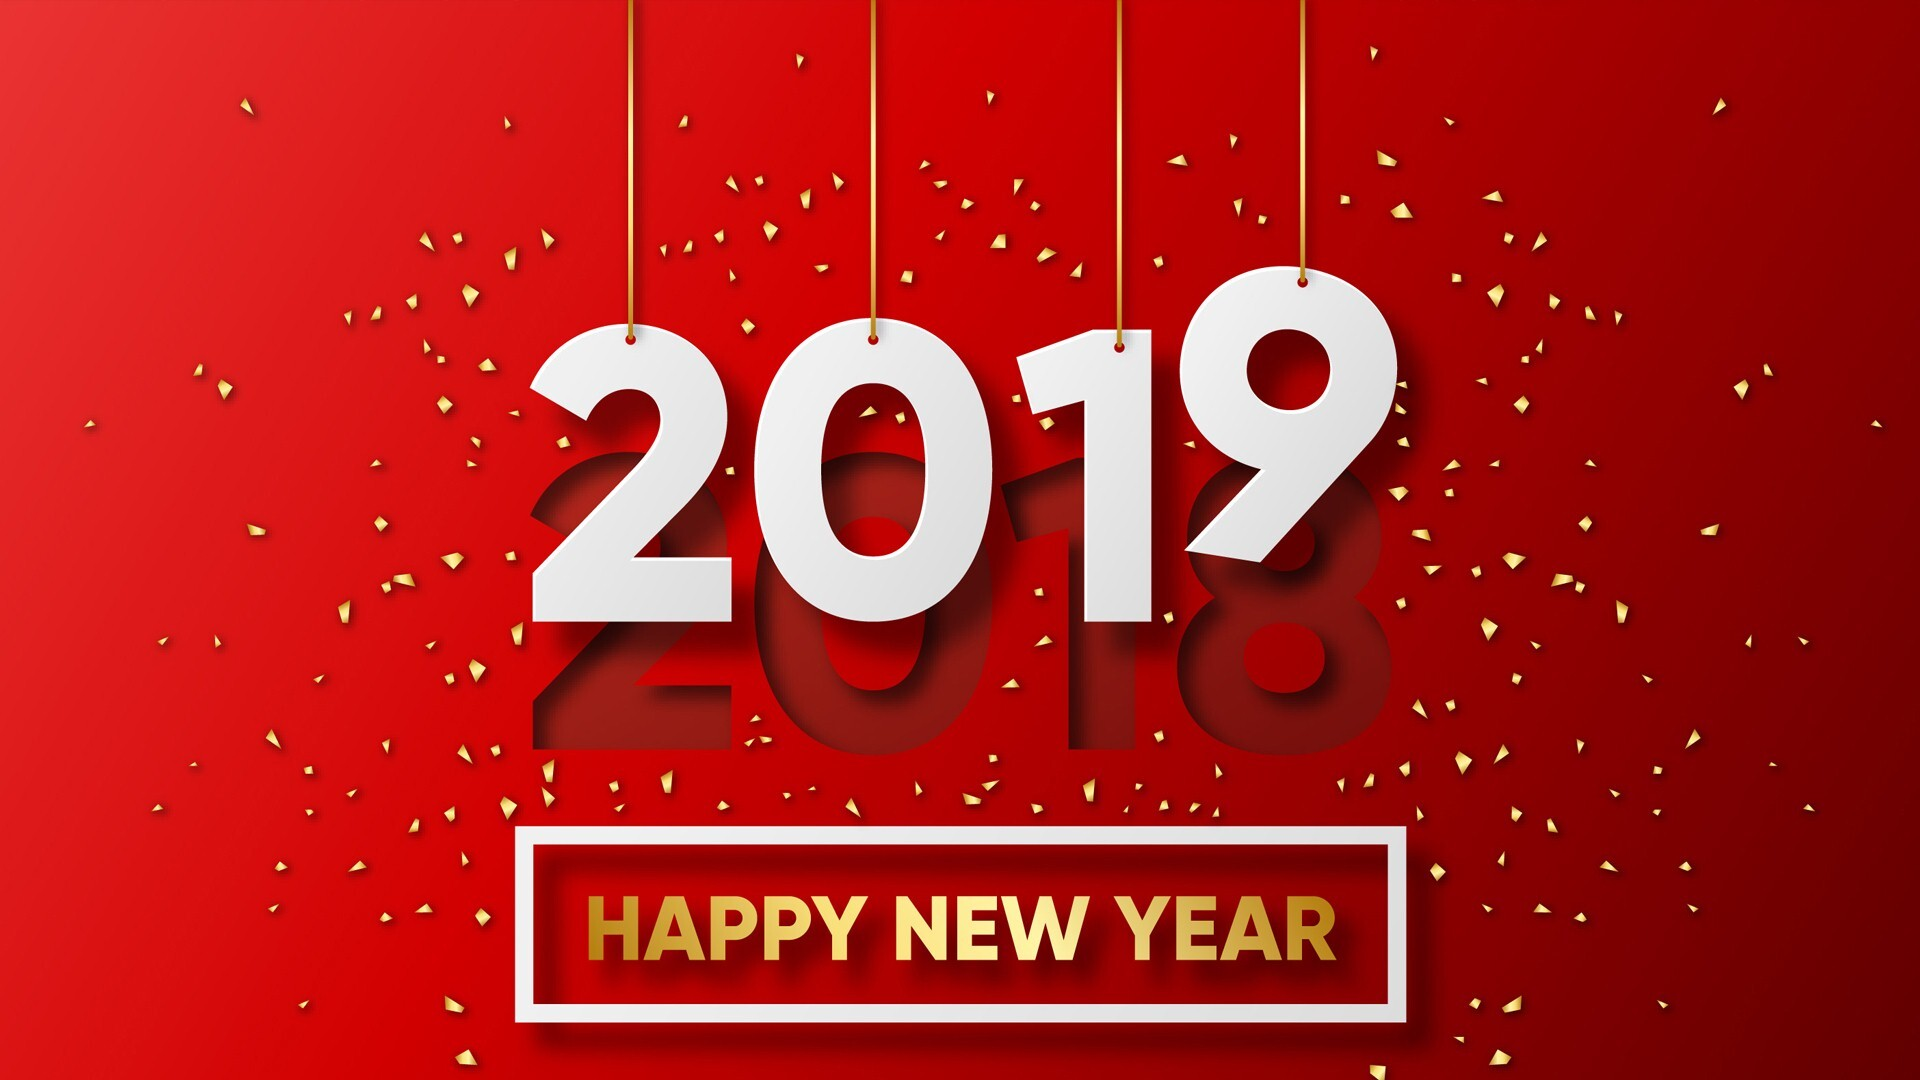 New Year 2019 Holiday Hd Wallpapers Hd Wallpapers